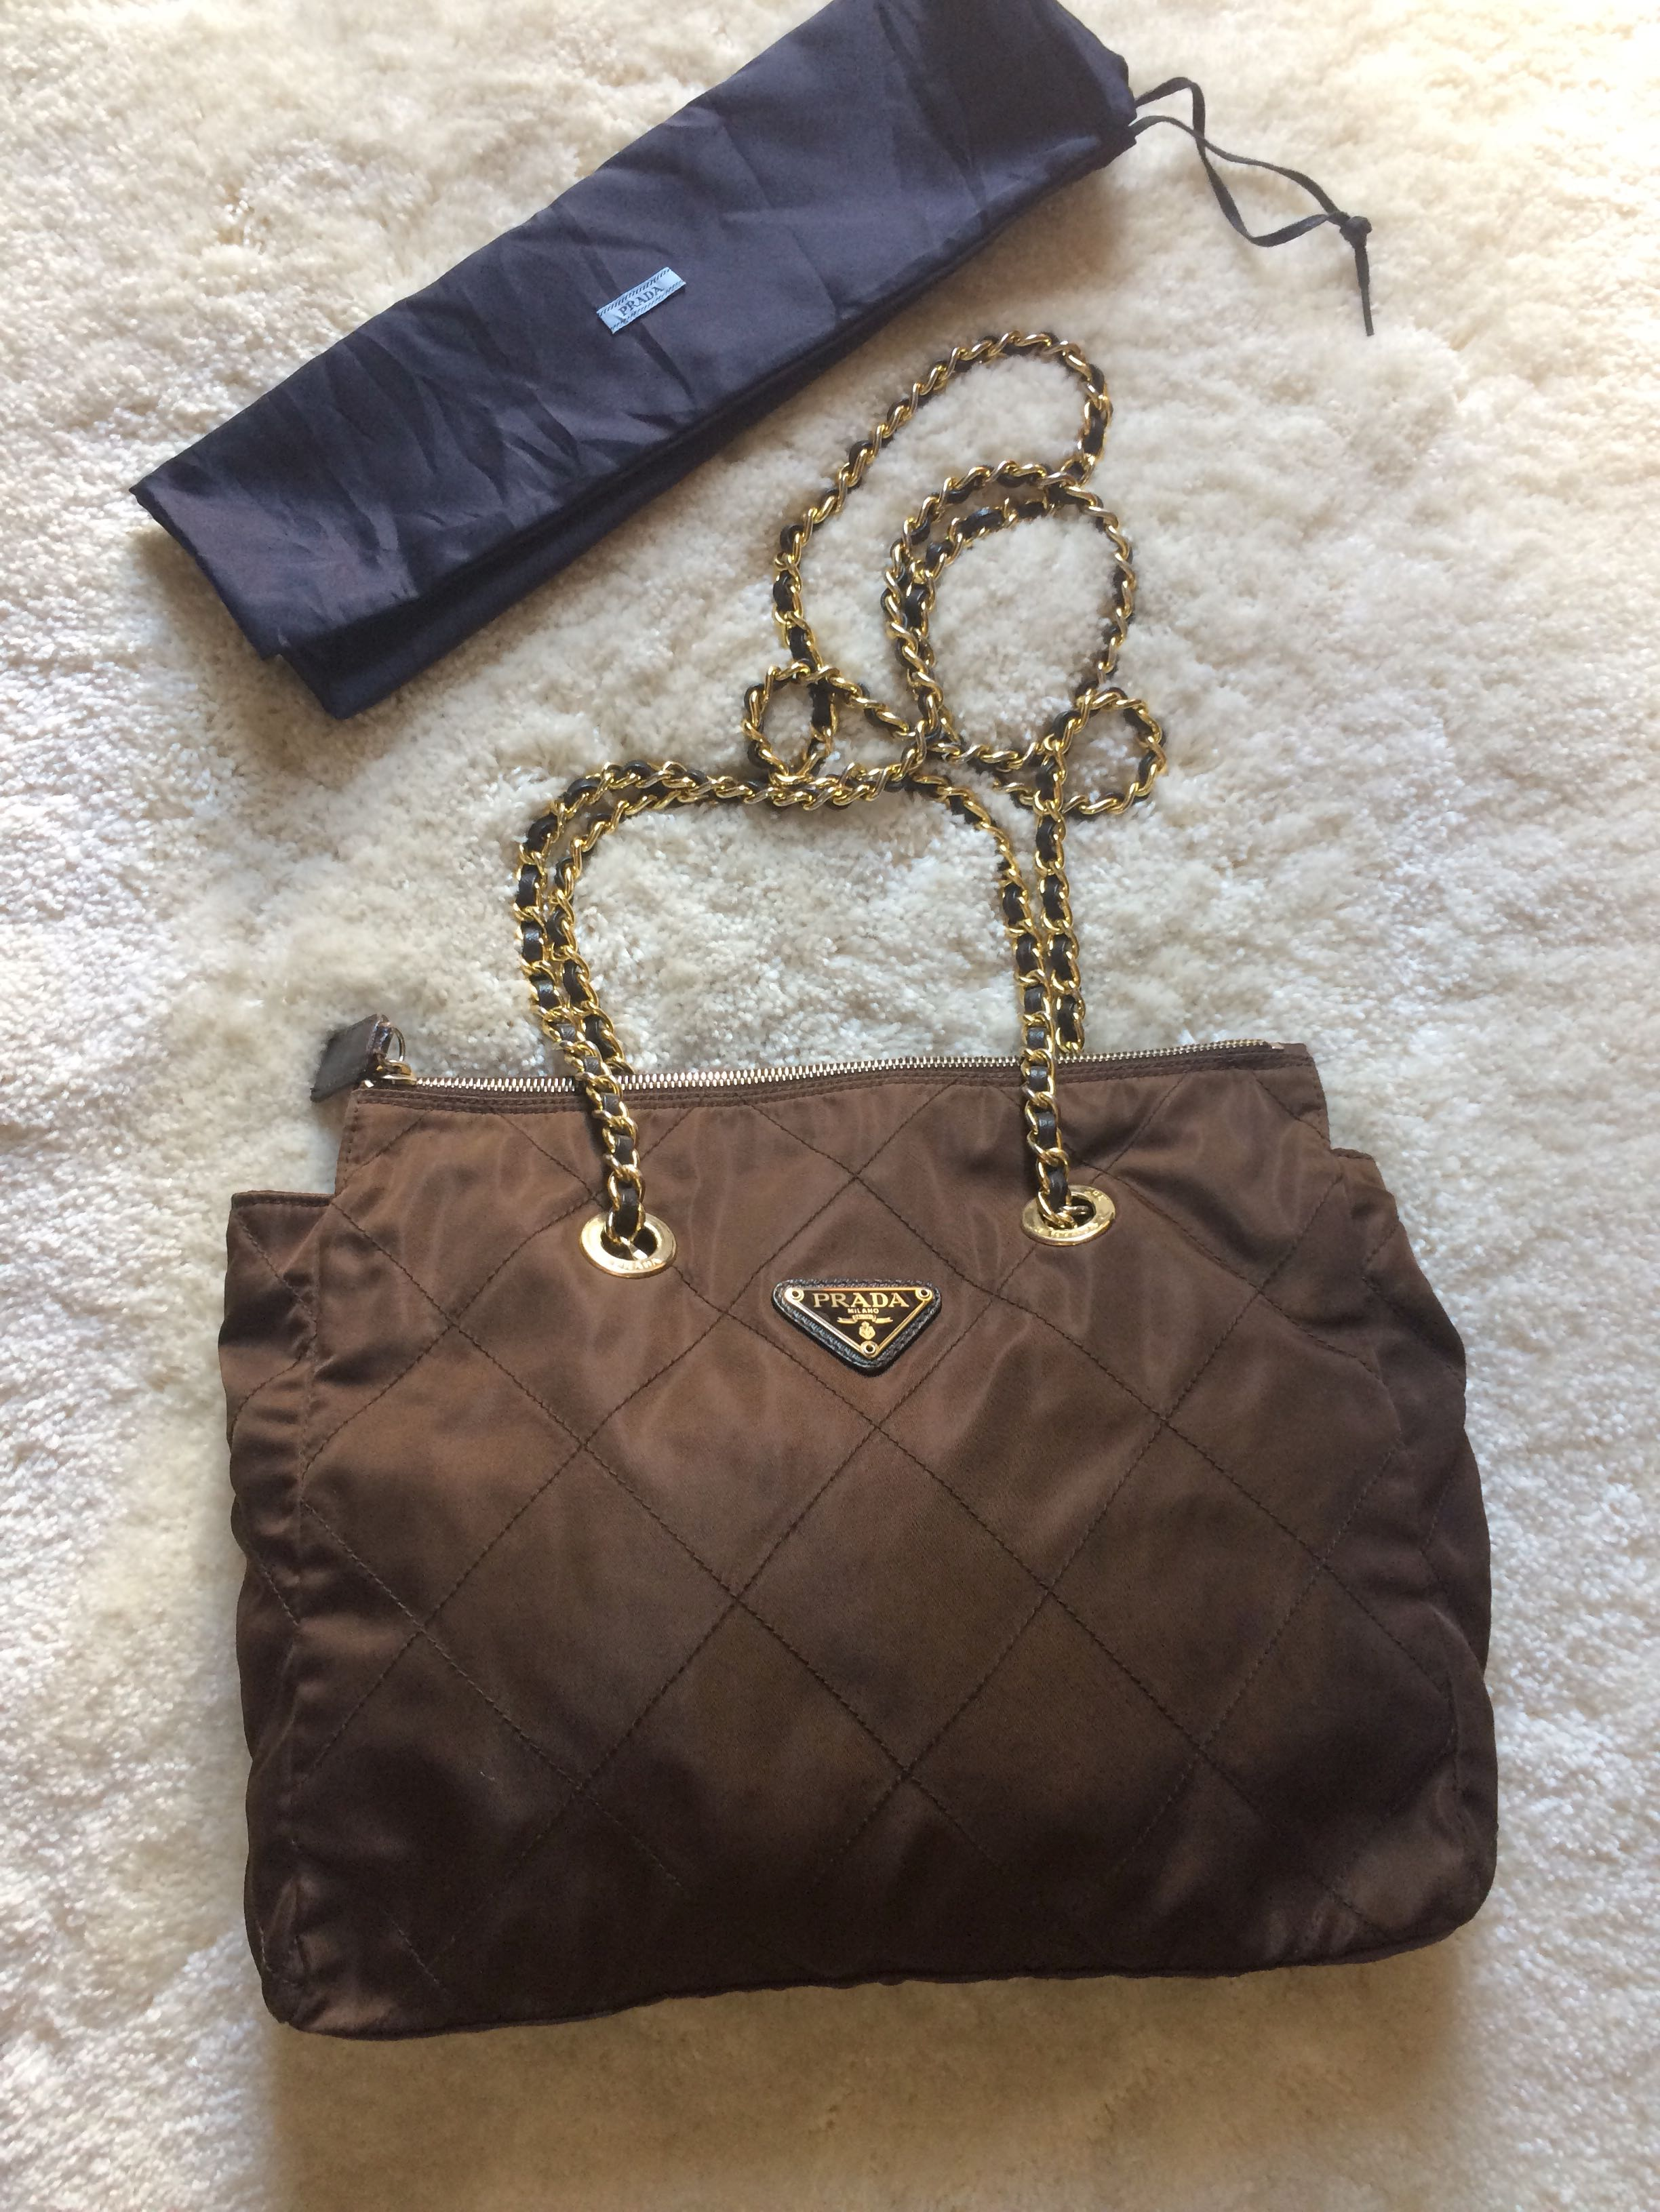 Authentic Prada Chain Bag With Dustbag